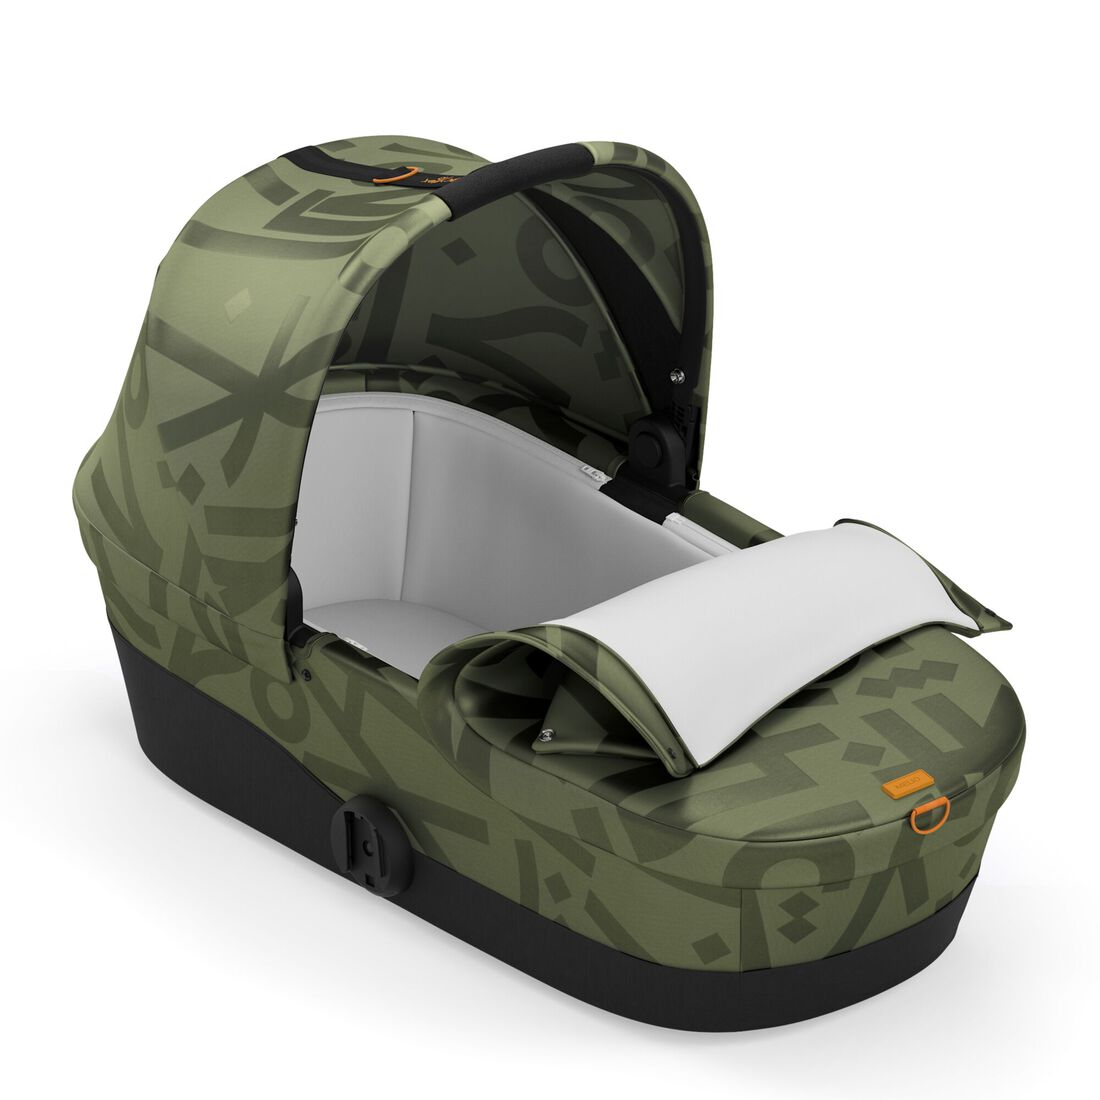 CYBEX Melio Cot - Olive Green in Olive Green large Bild 3